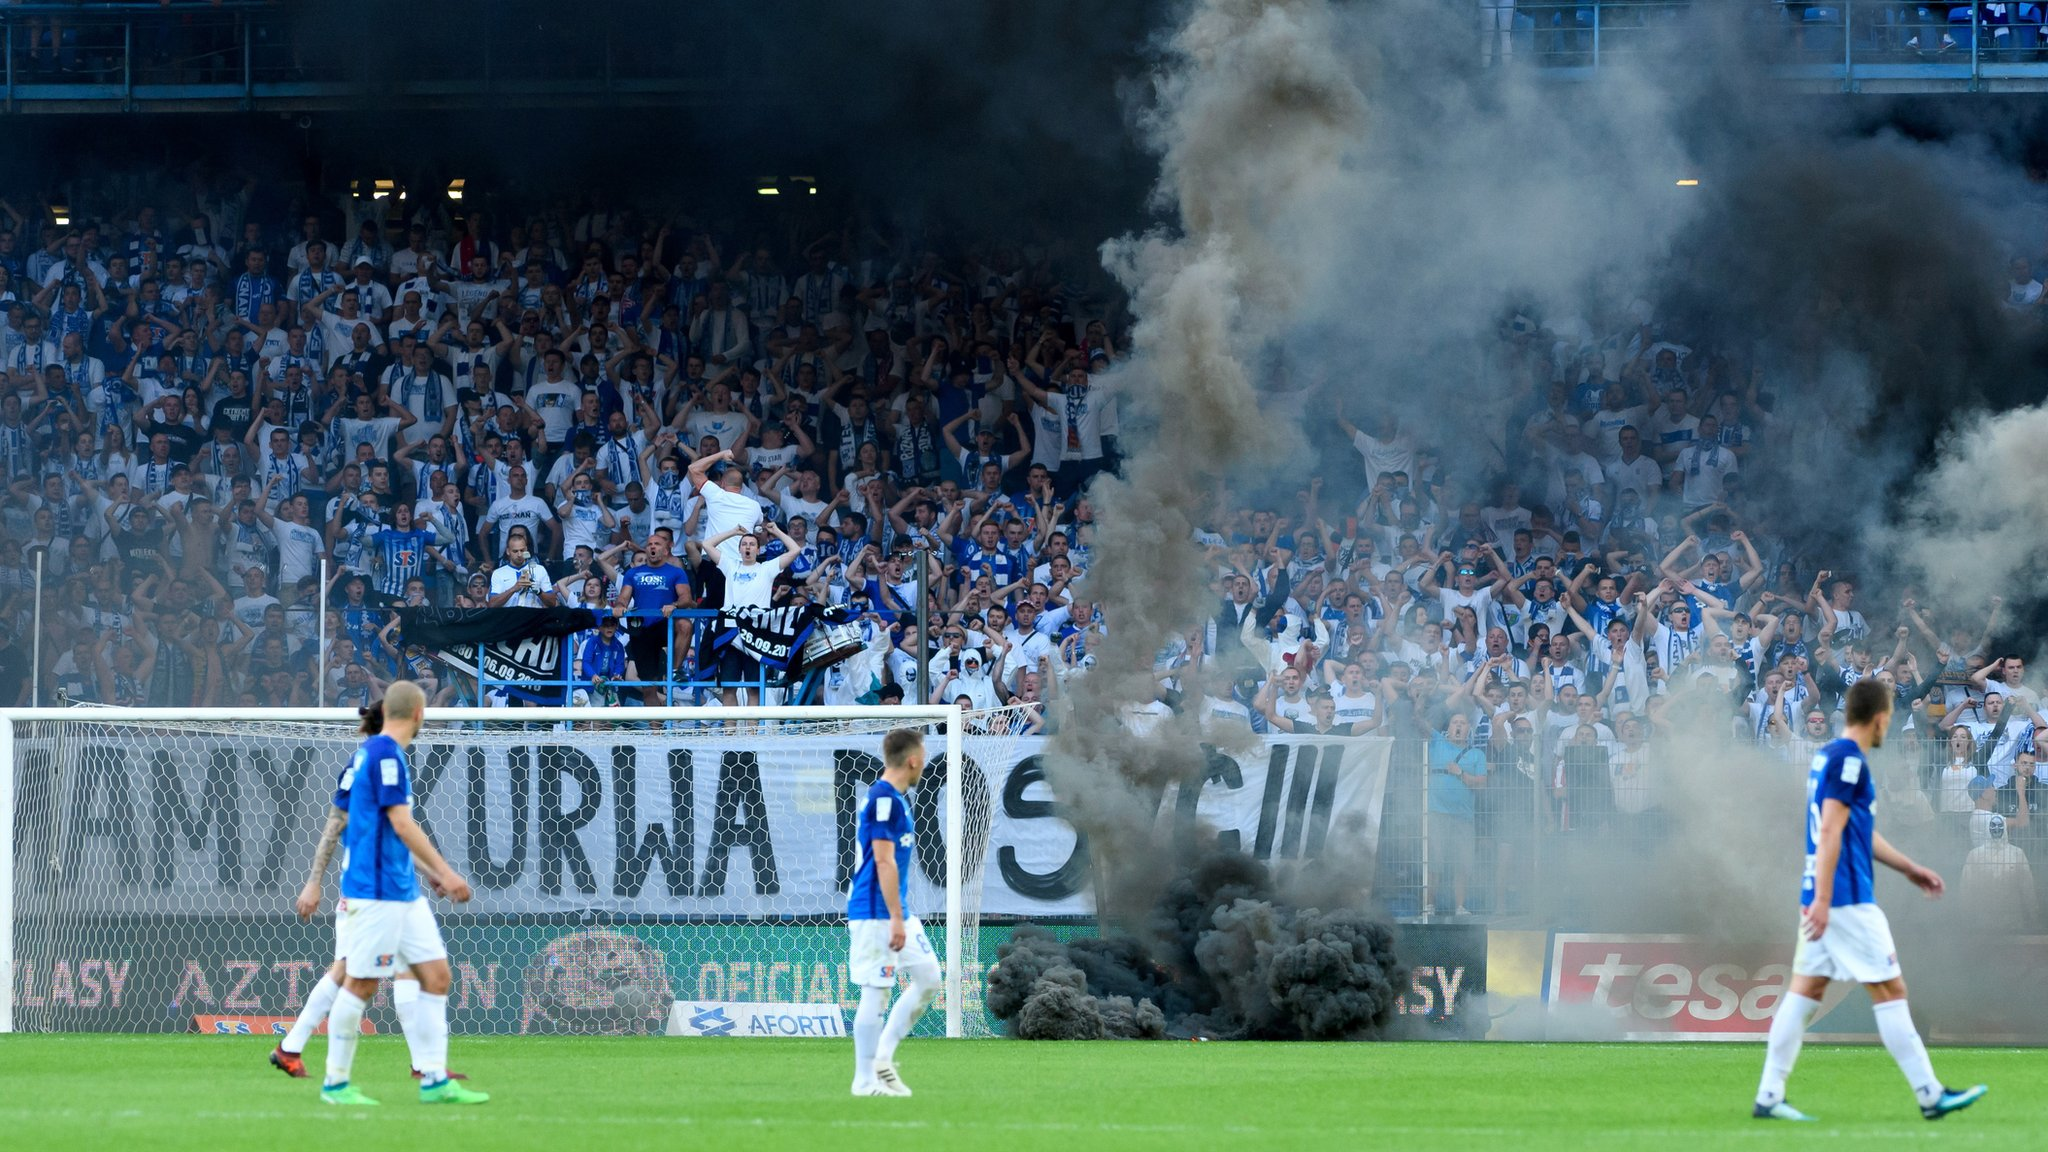 Legia Warsaw win Polish title after game abandoned